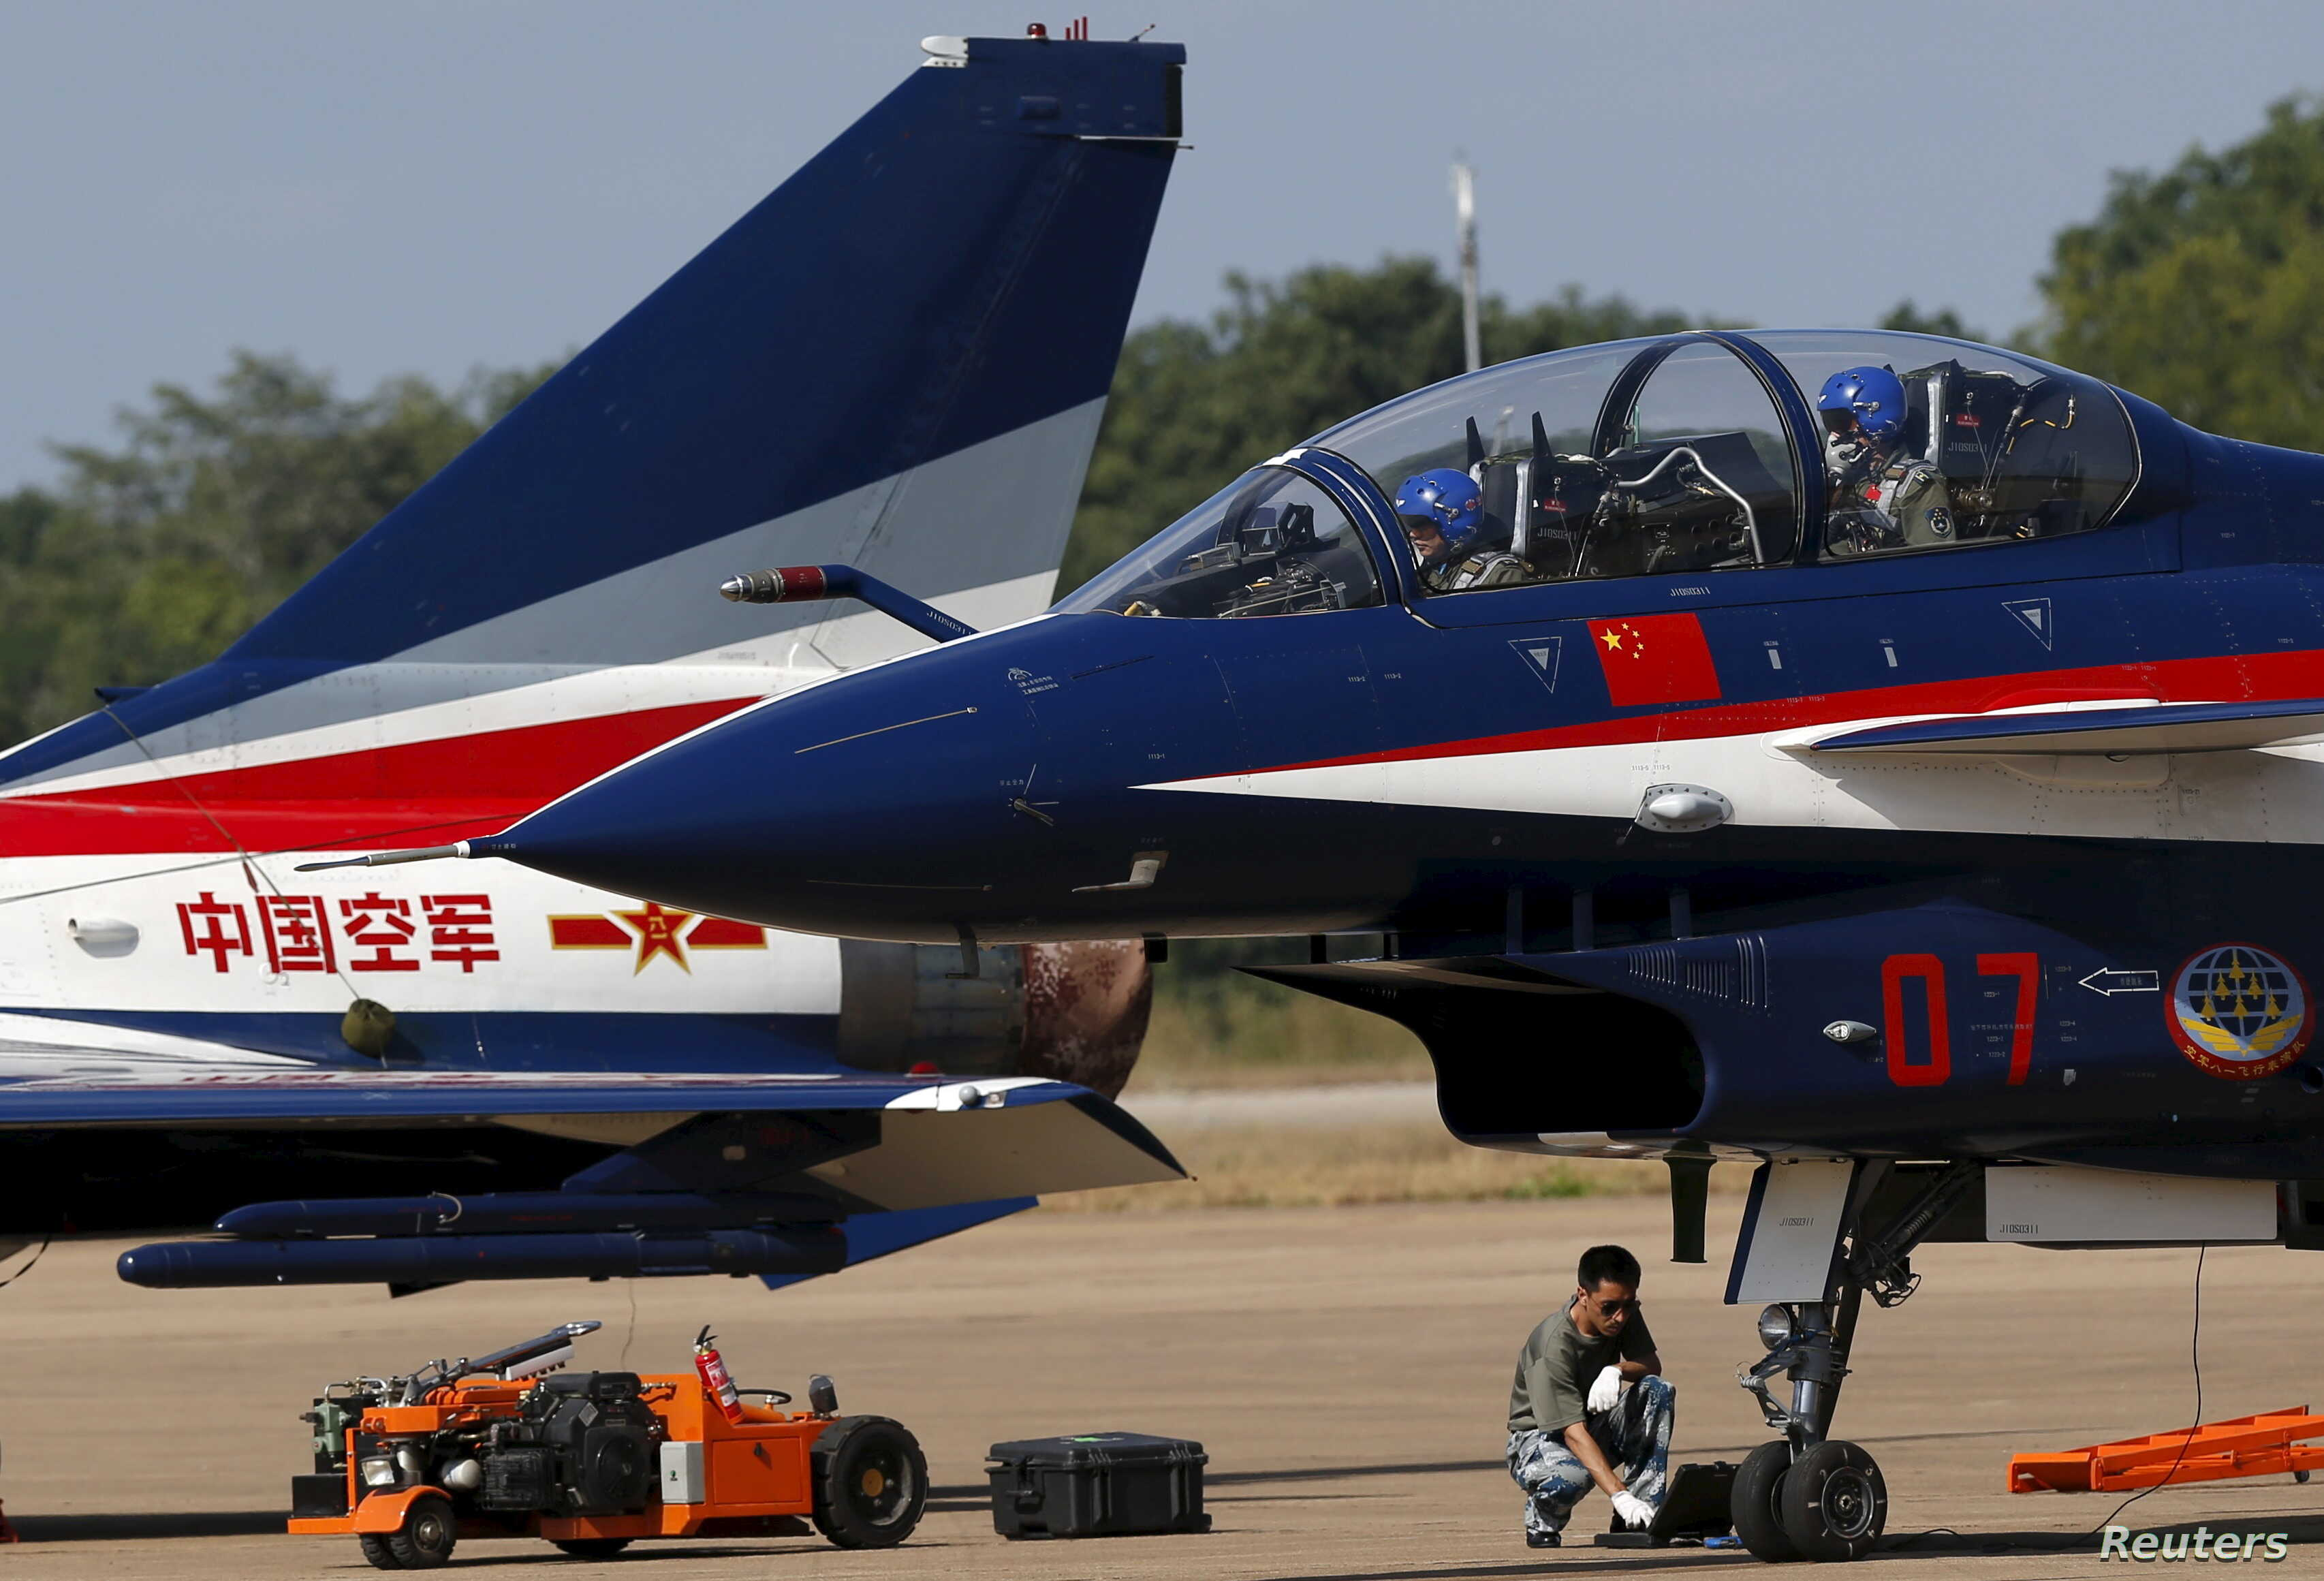 Thailand, China Step Up Military Cooperation | Voice of America - English